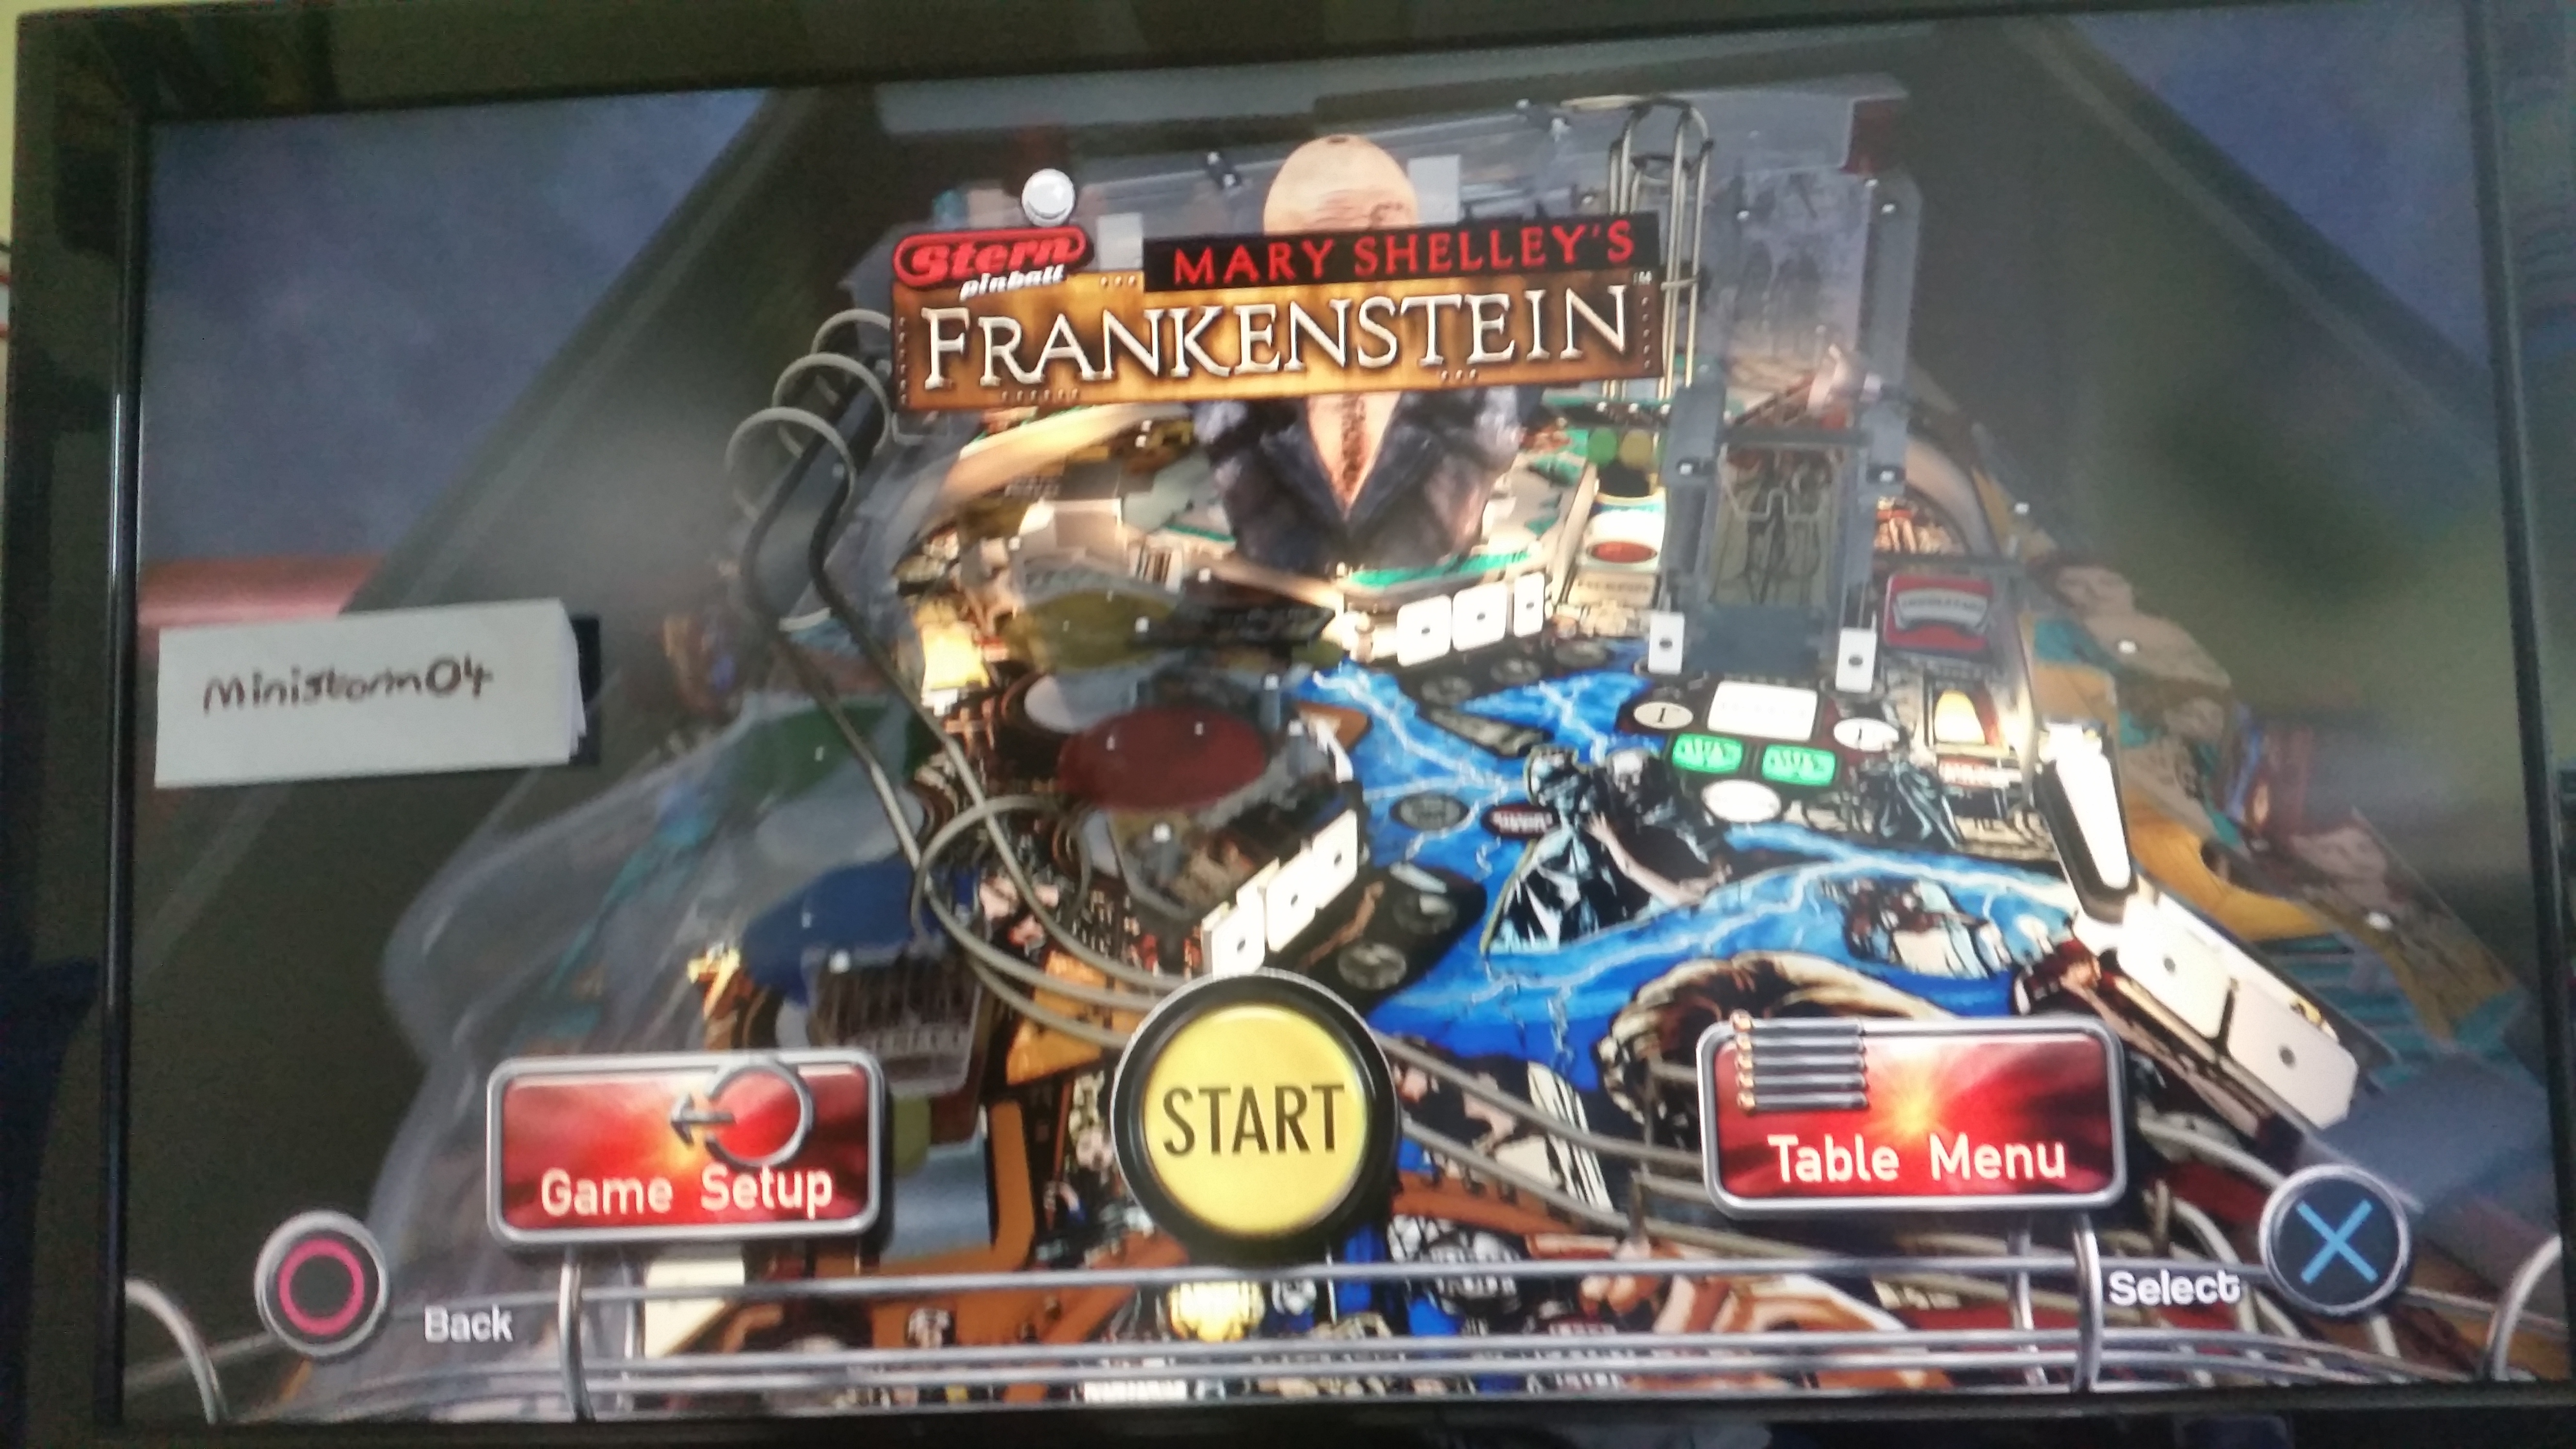 Pinball Arcade: Mary Shelley